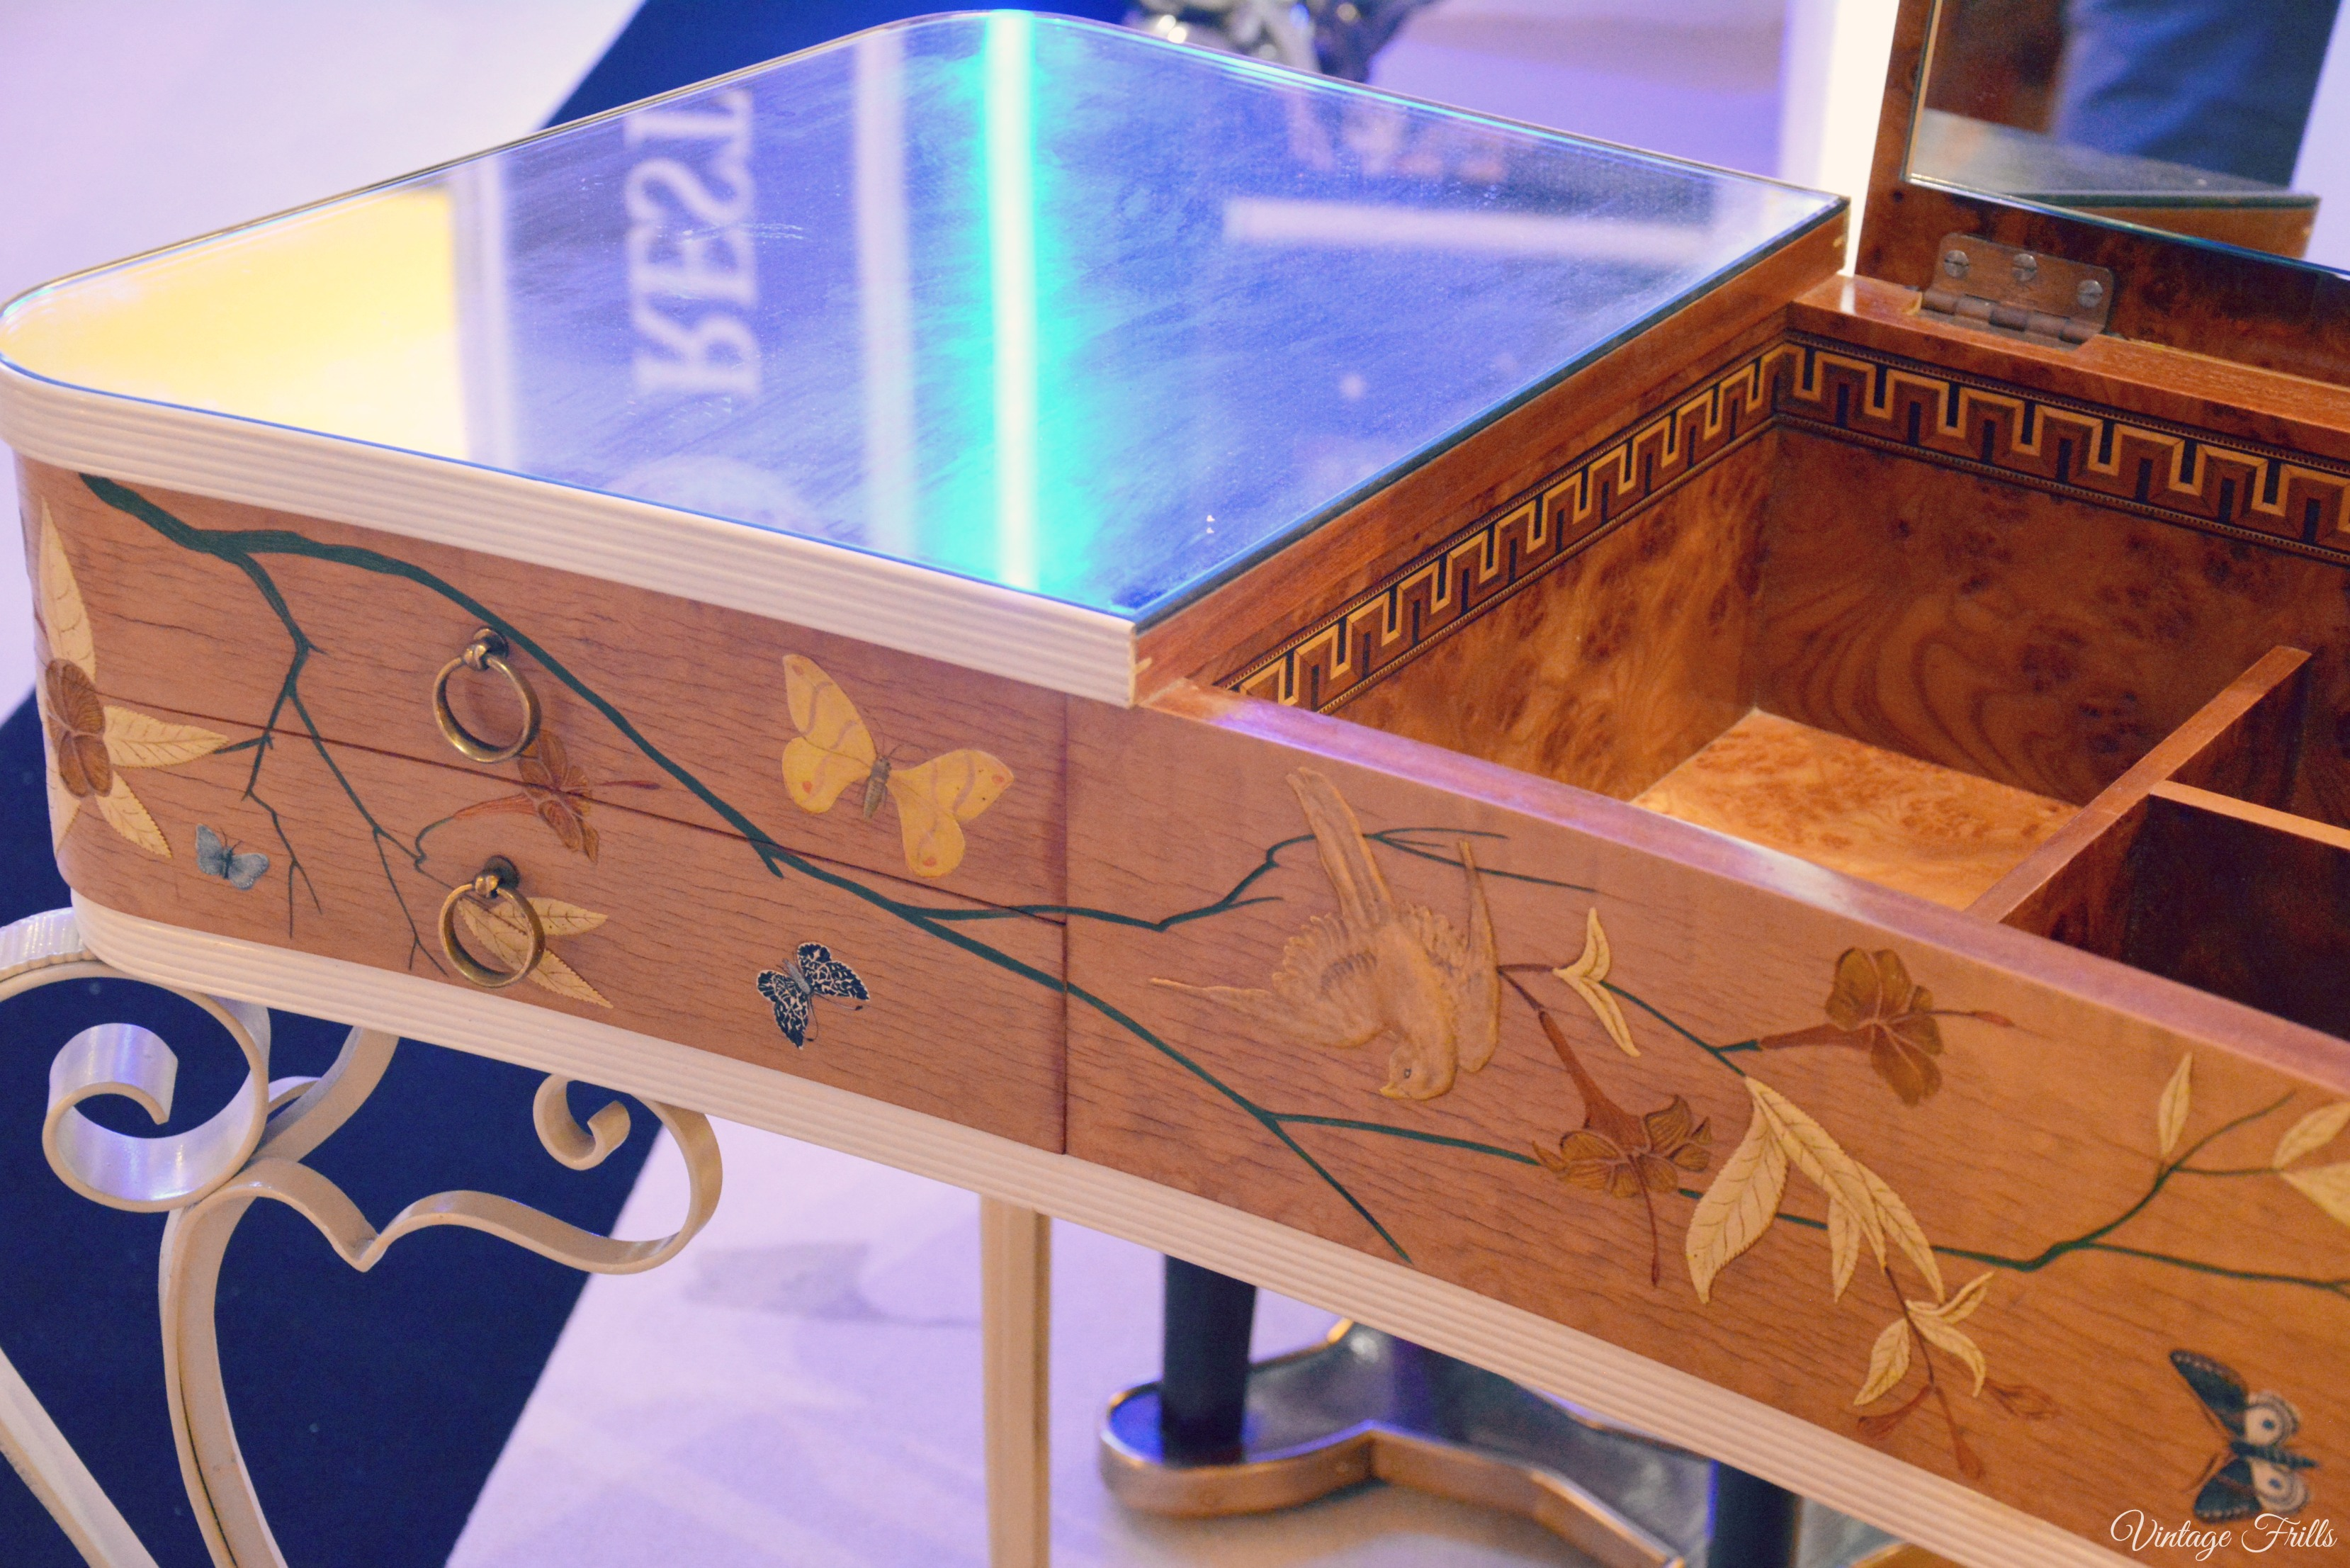 Olympia Art and Antiques Art Deco Inlaid Wooden Desk